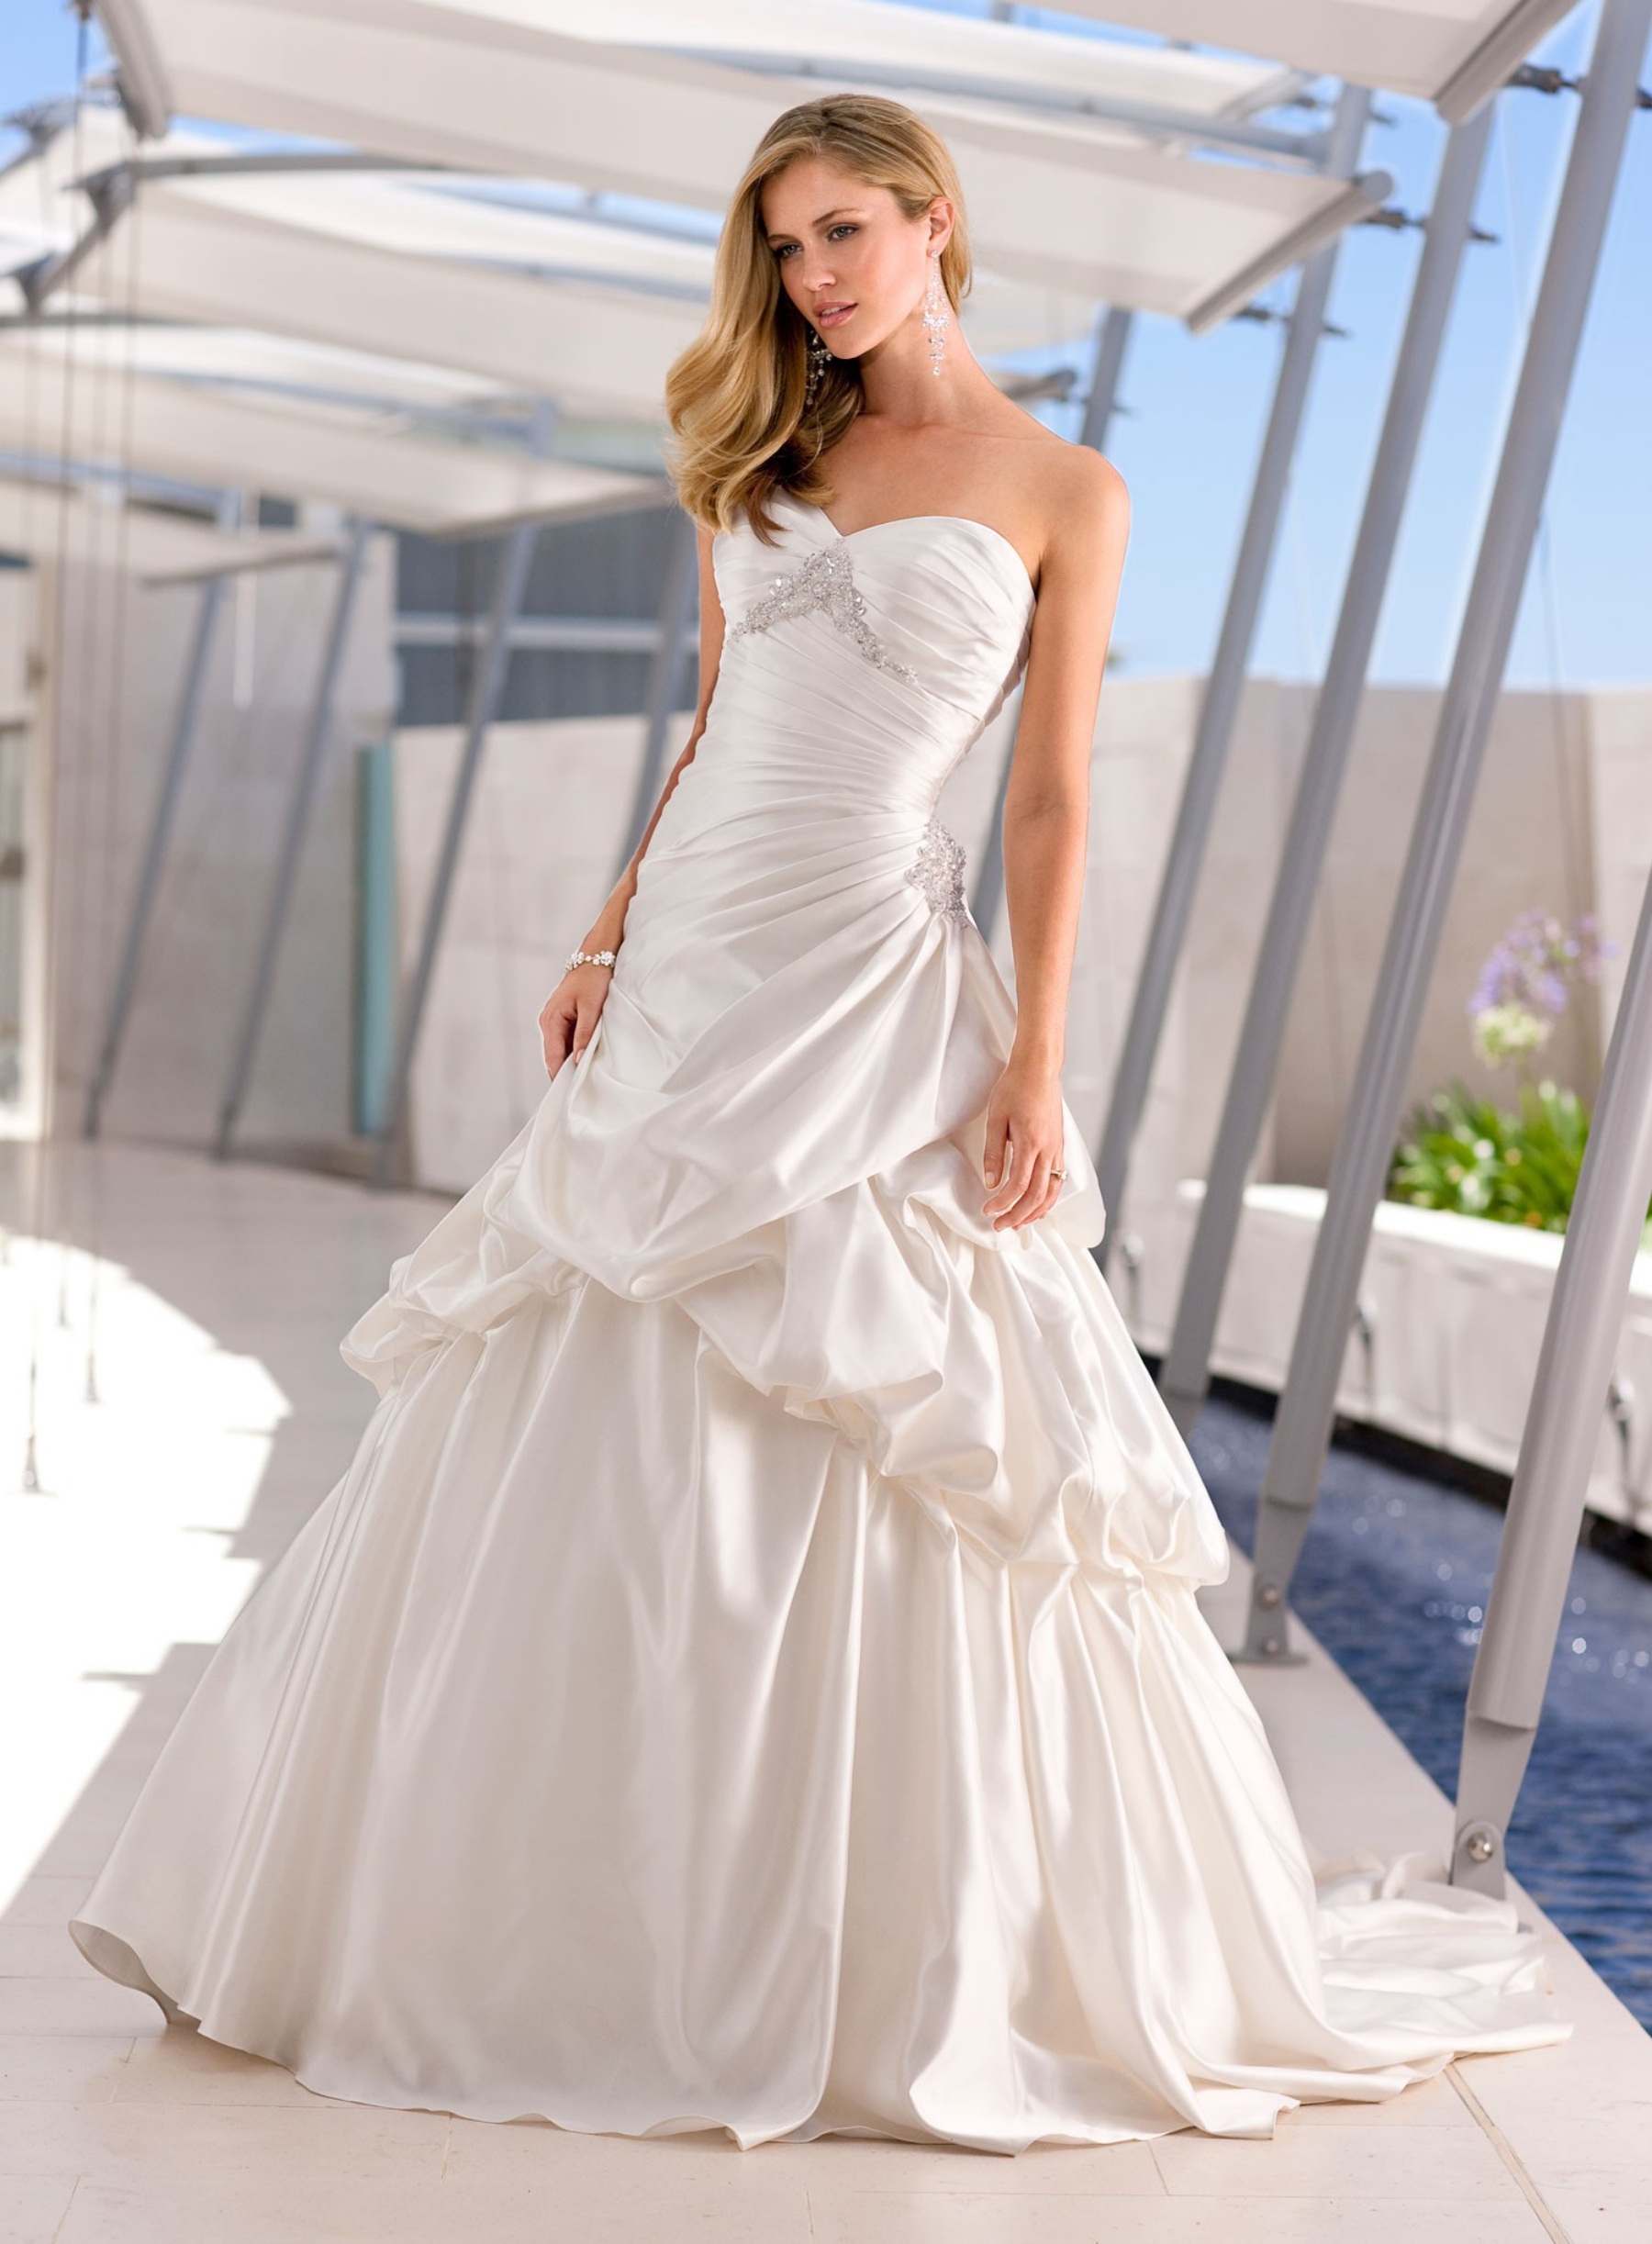 Cheap Wedding Dresses Under 100 Dollars